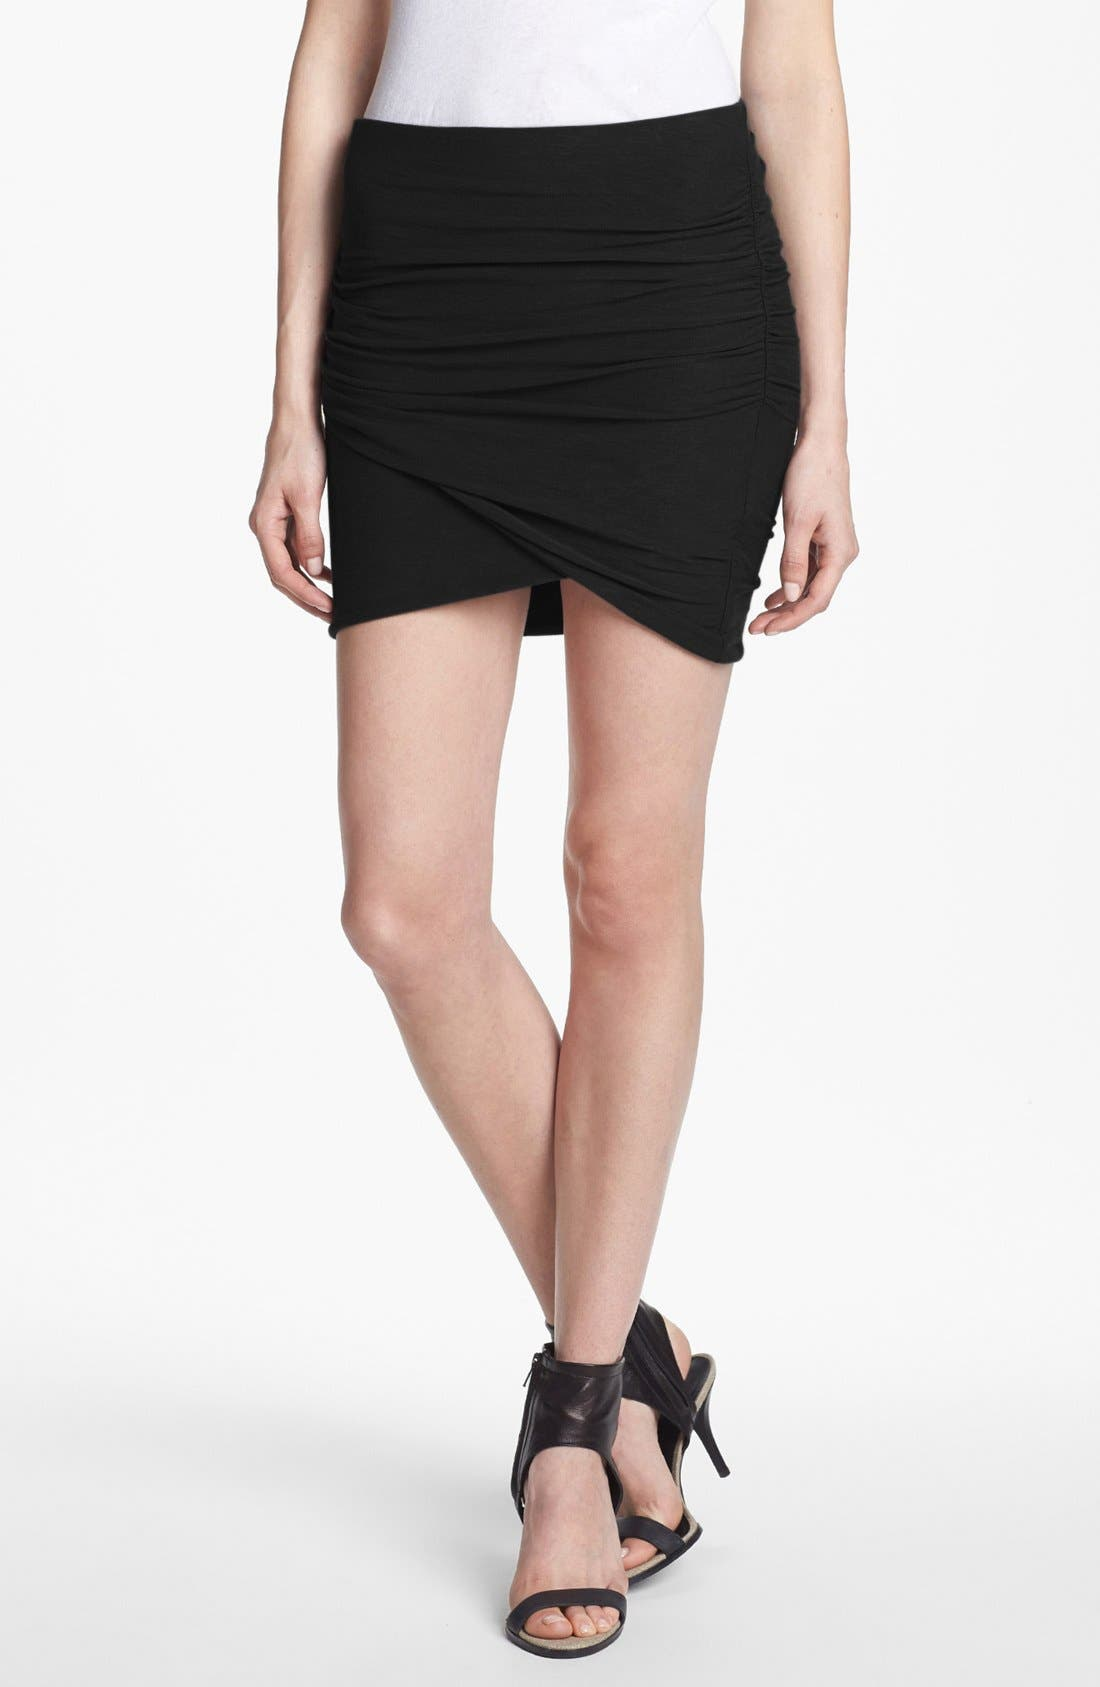 JAMES PERSE Wrapped Miniskirt, Main, color, BLACK